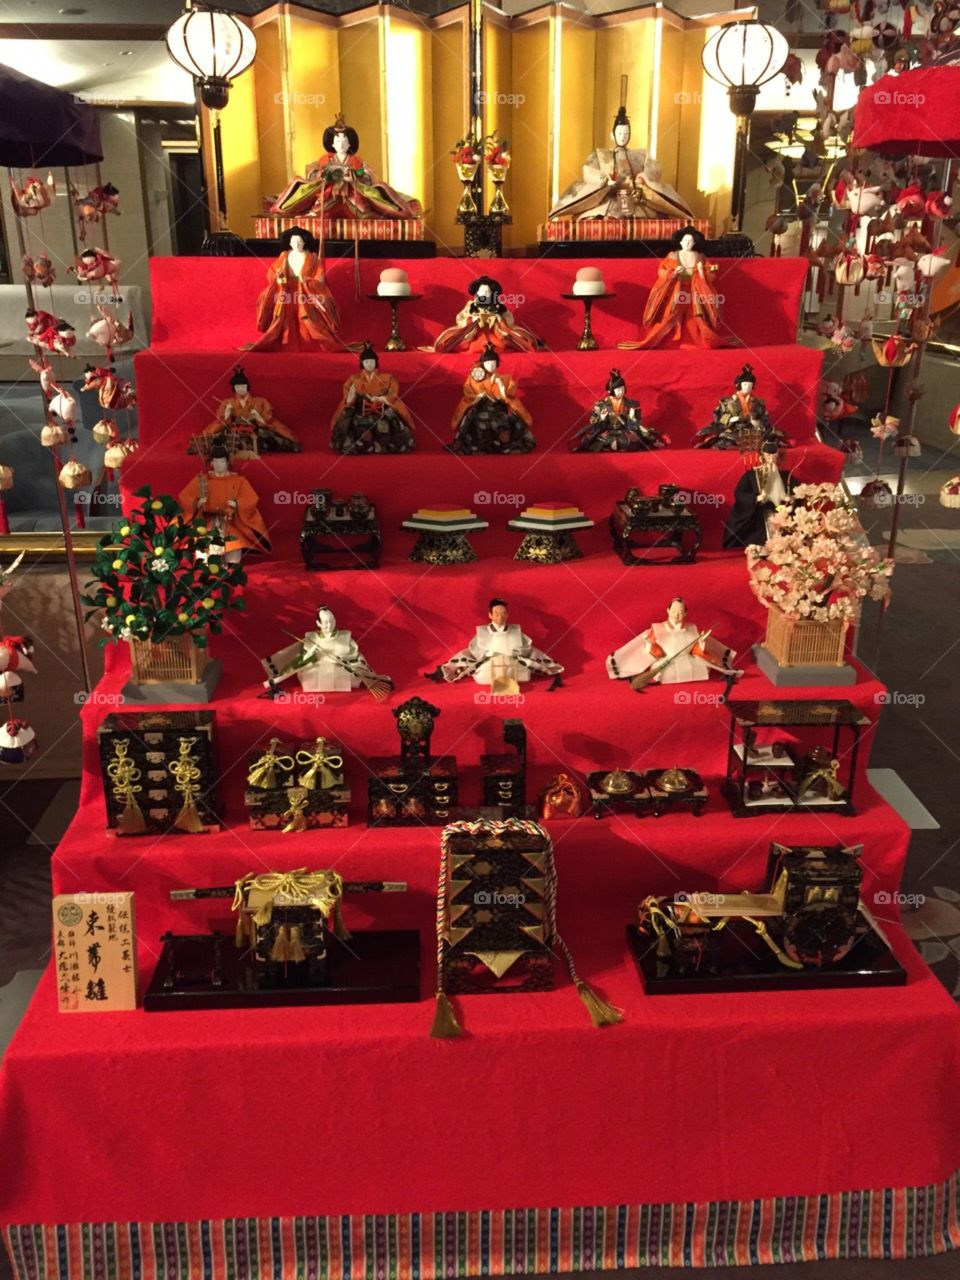 Hina Ningyo. Hina means princess, and Ningyo means doll. We decorate this dolls on March 3th in Japan. It's called Hinamatsuri. Hinamatsuri is a festival for girls.